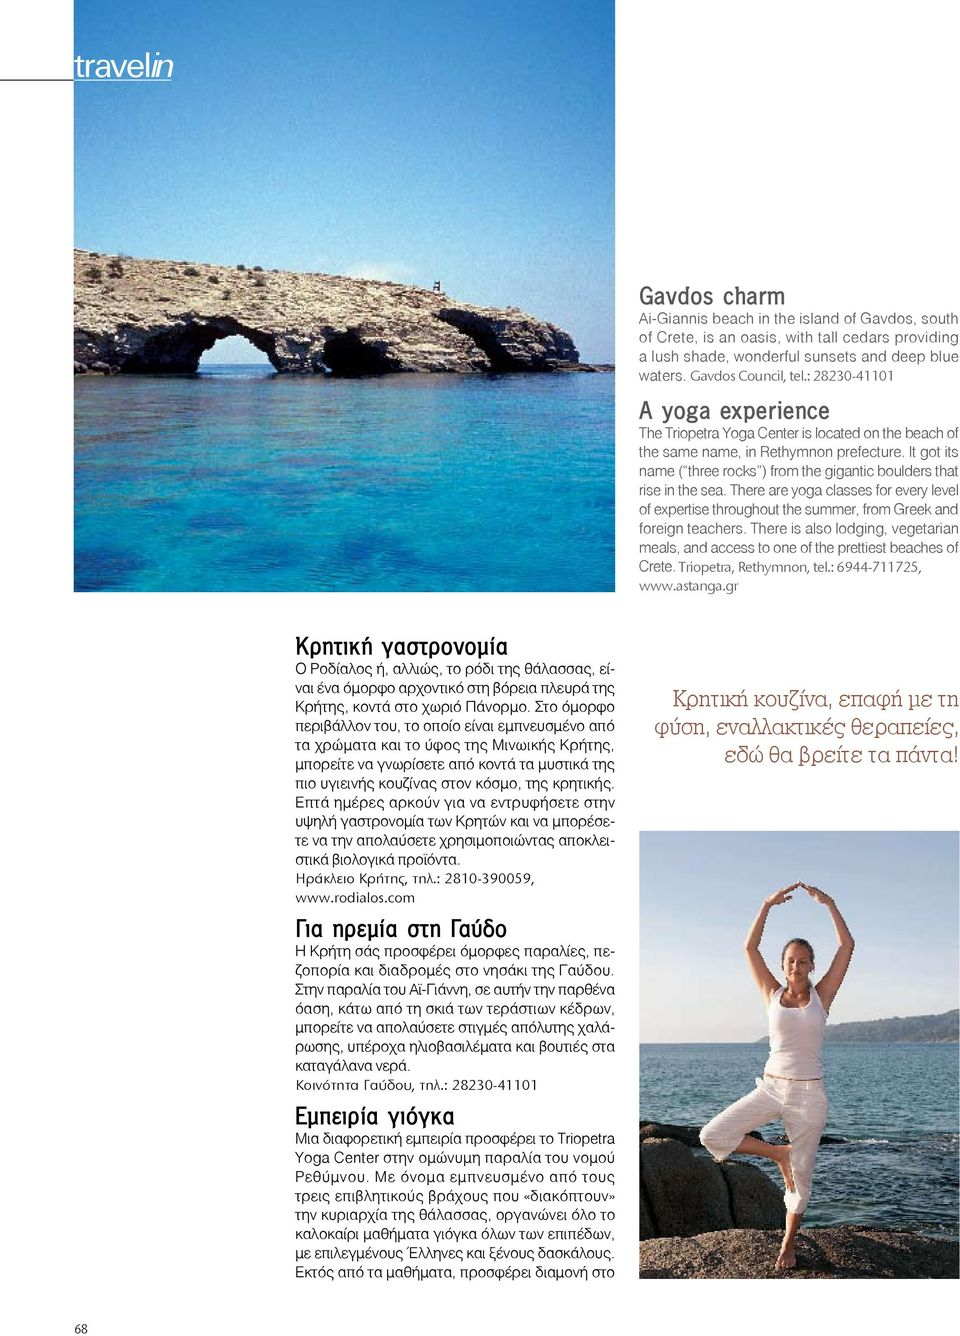 It got its name ( three rocks ) from the gigantic boulders that rise in the sea. There are yoga classes for every level of expertise throughout the summer, from Greek and foreign teachers.